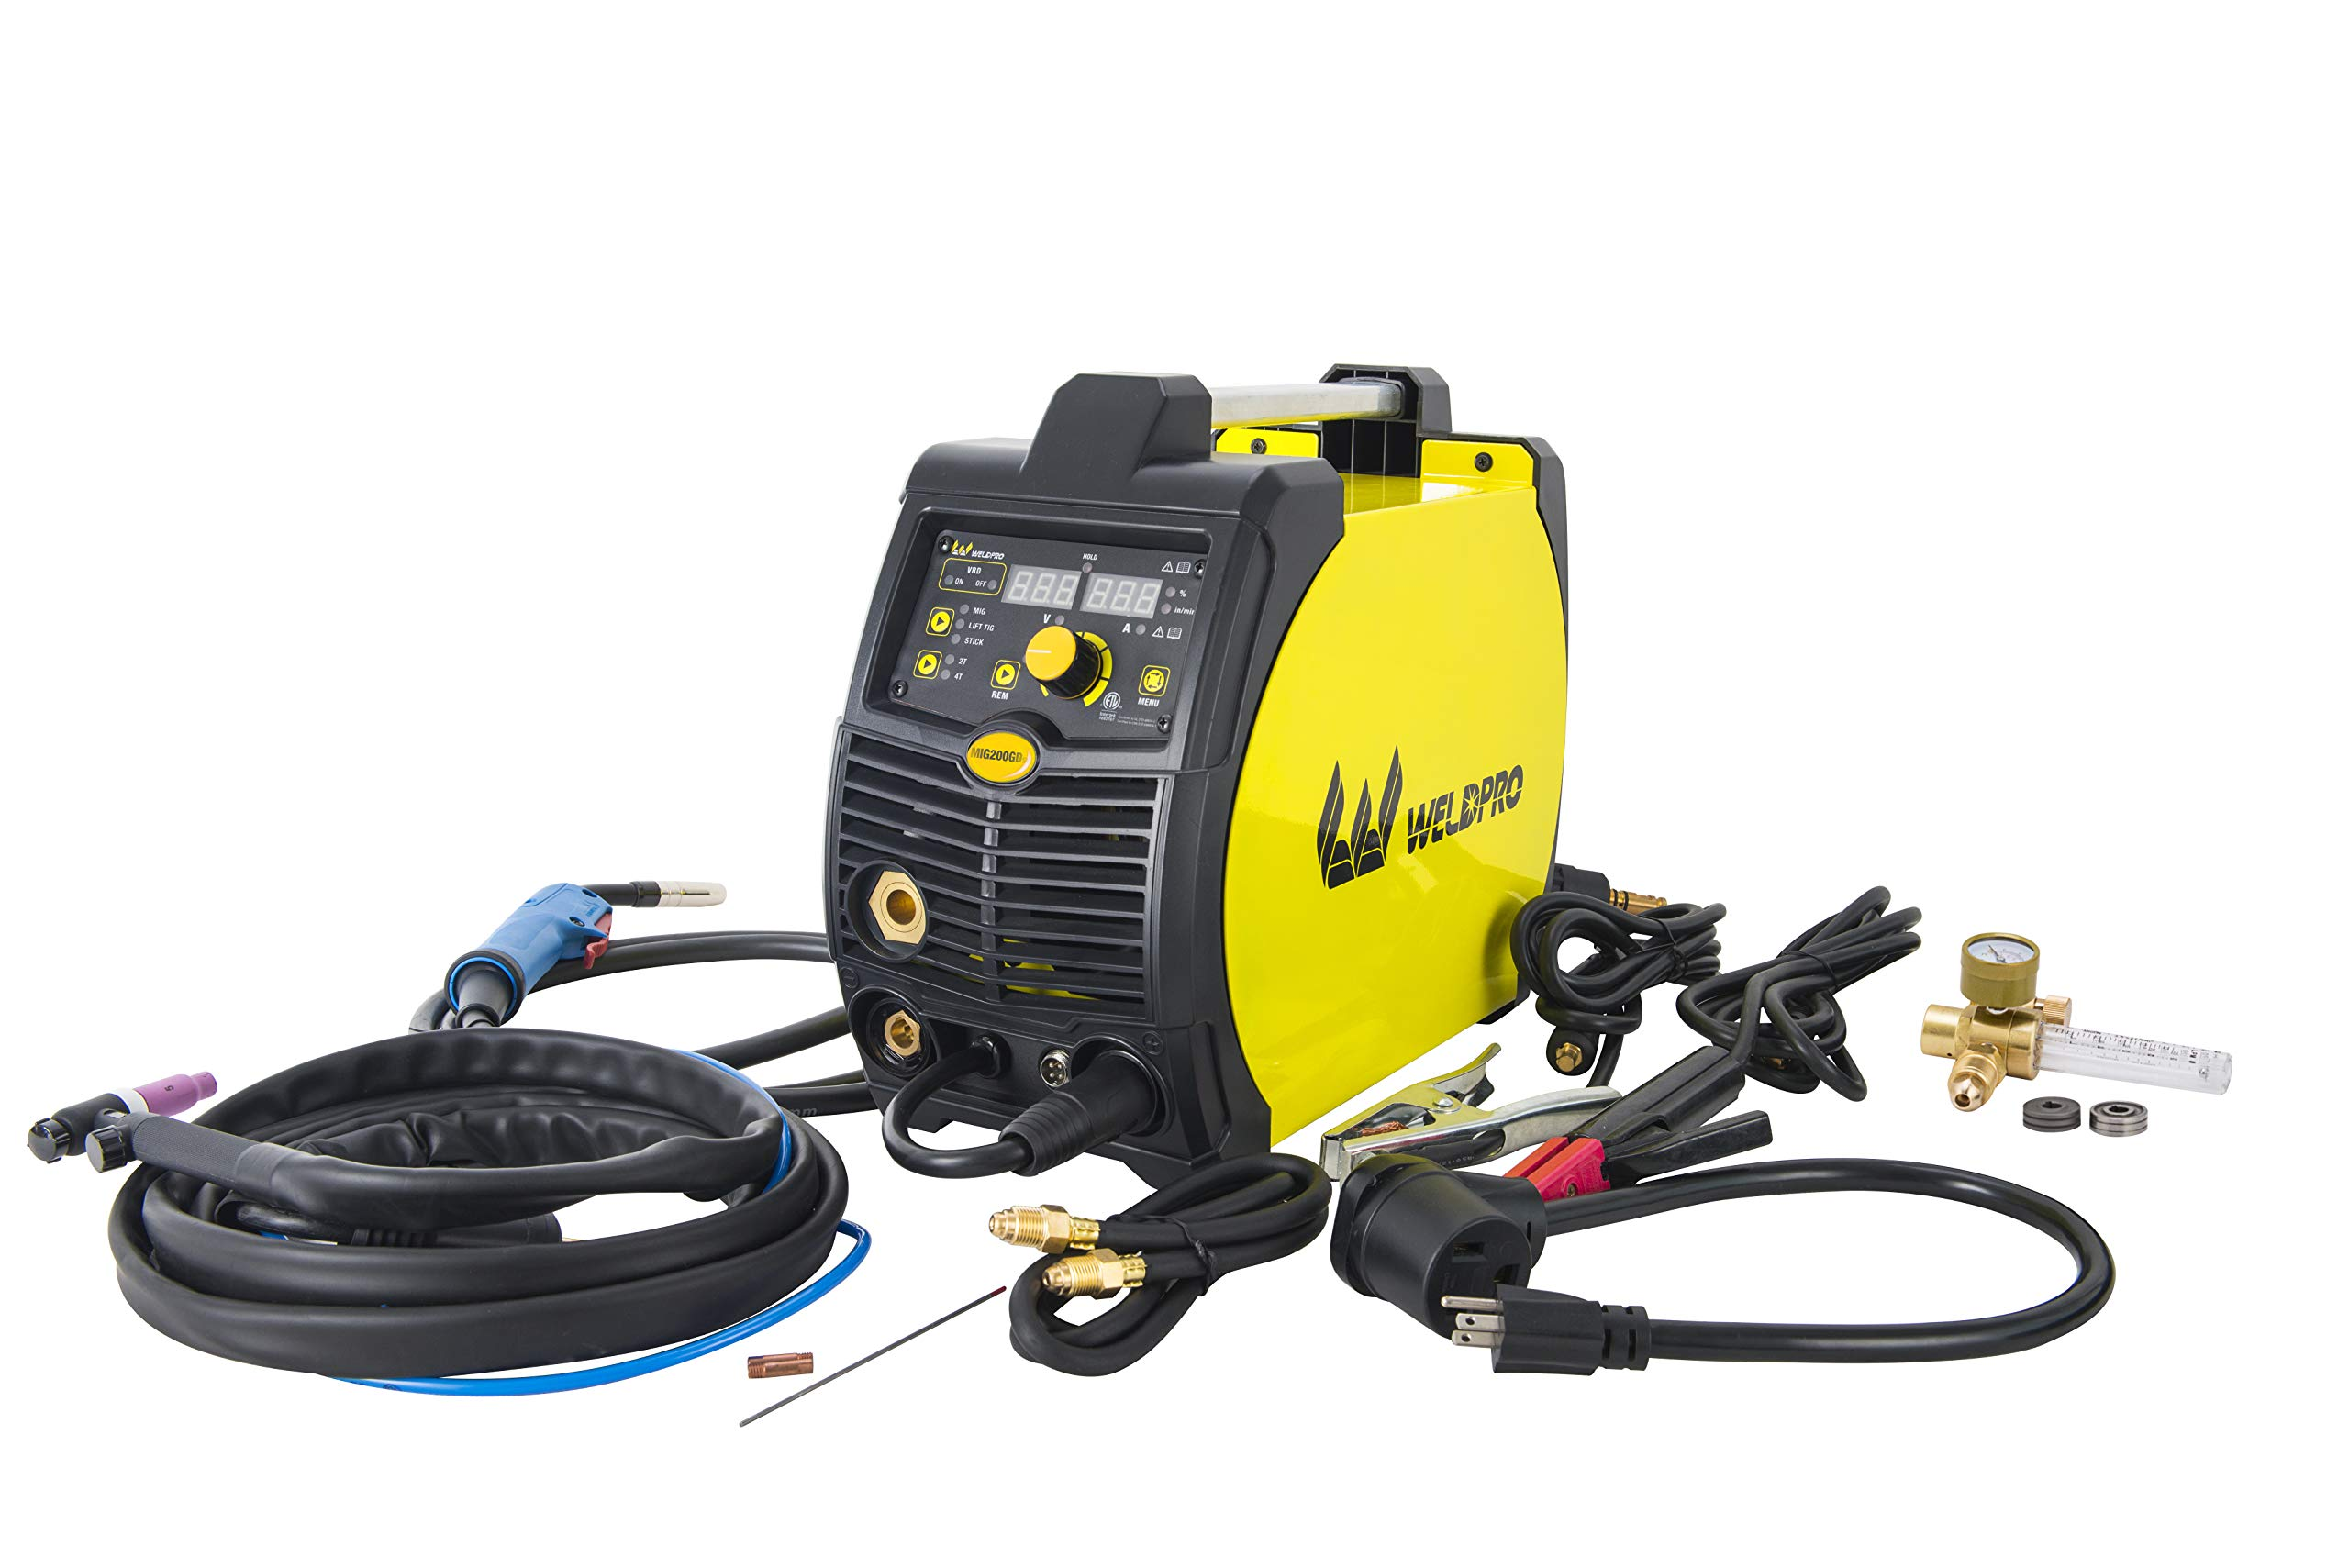 Weldpro 200 Amp Inverter Multi Process Welder with Dual Voltage 220V/110V Mig/Tig/Arc Stick 3 1 welder/welding machine by W Weldpro (Image #1)